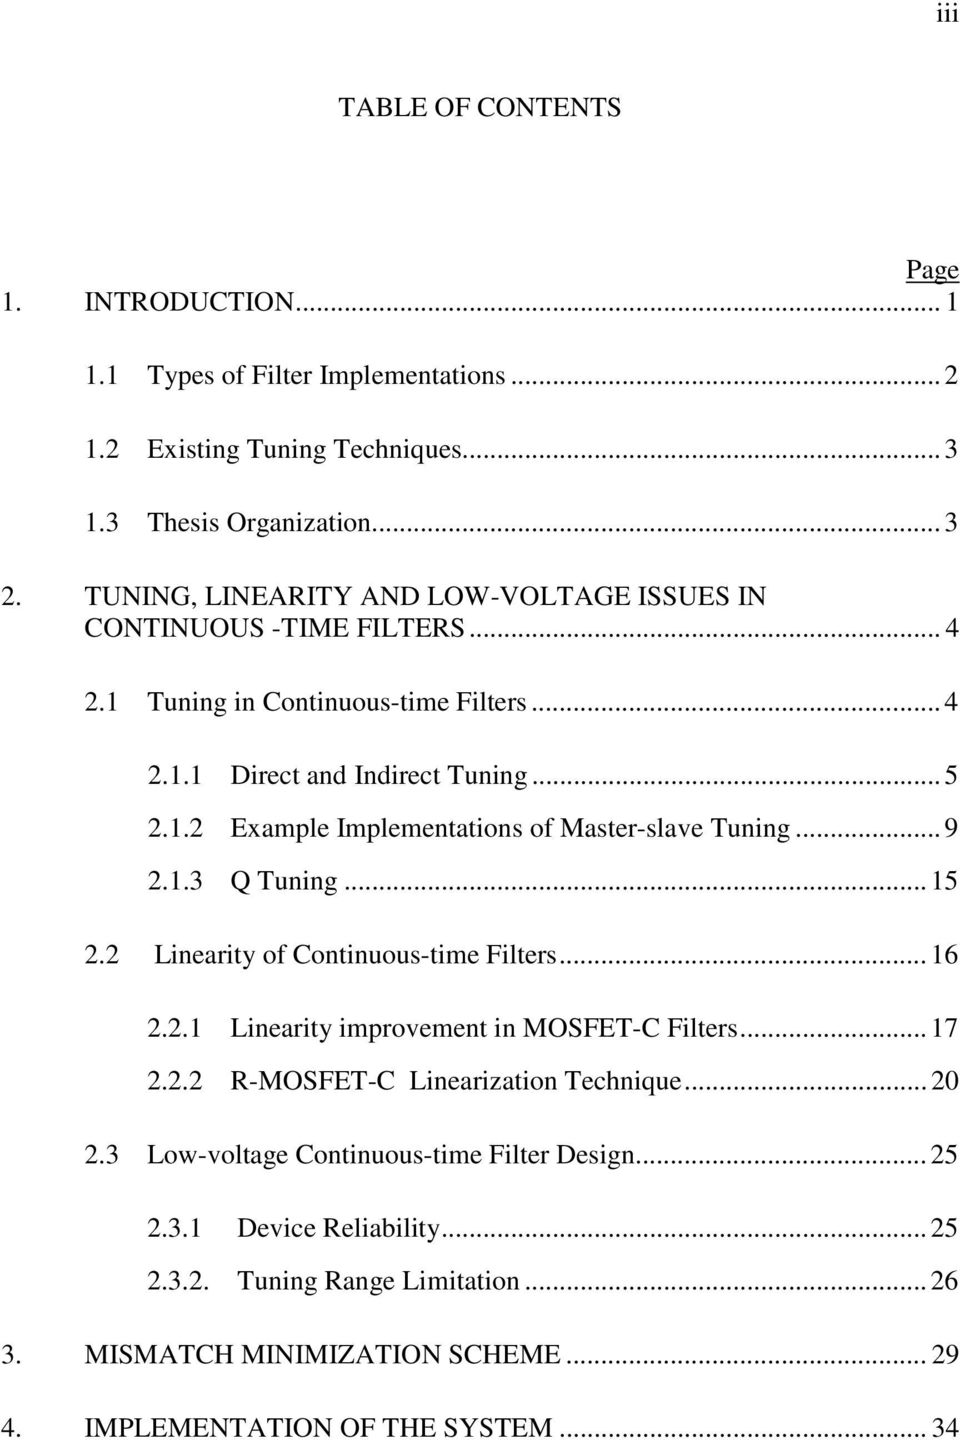 .. 9 2.1.3 Q Tuning... 15 2.2 Linearity of Continuous-time Filters... 16 2.2.1 Linearity improvement in MOSFET-C Filters... 17 2.2.2 R-MOSFET-C Linearization Technique... 20 2.